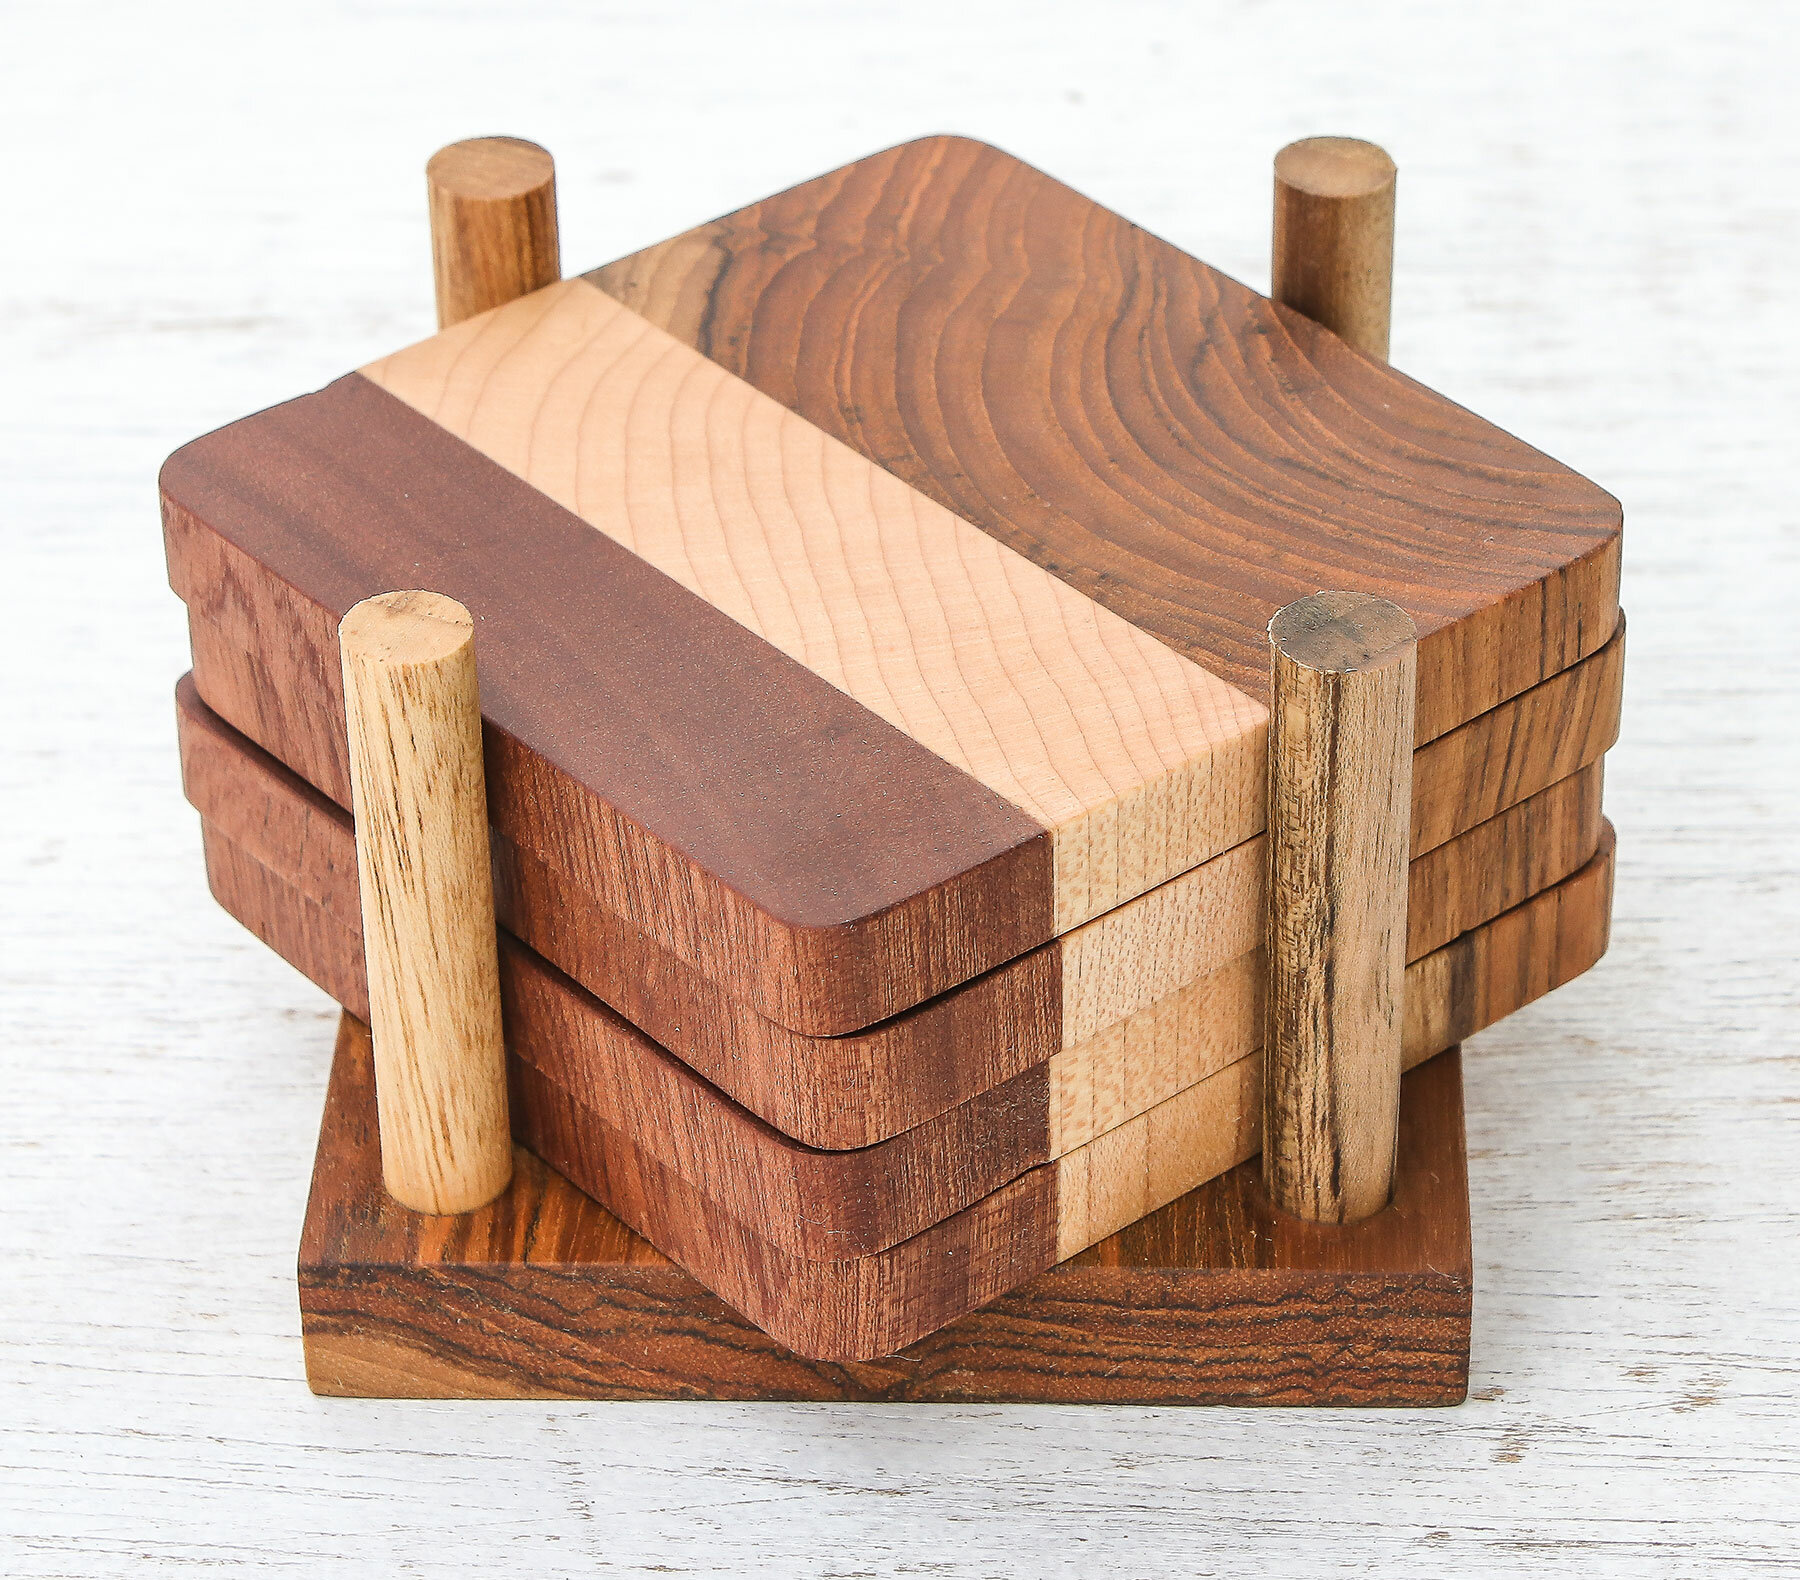 Union Rustic Cool Nature Wood Coaster Set With Holder Wayfair